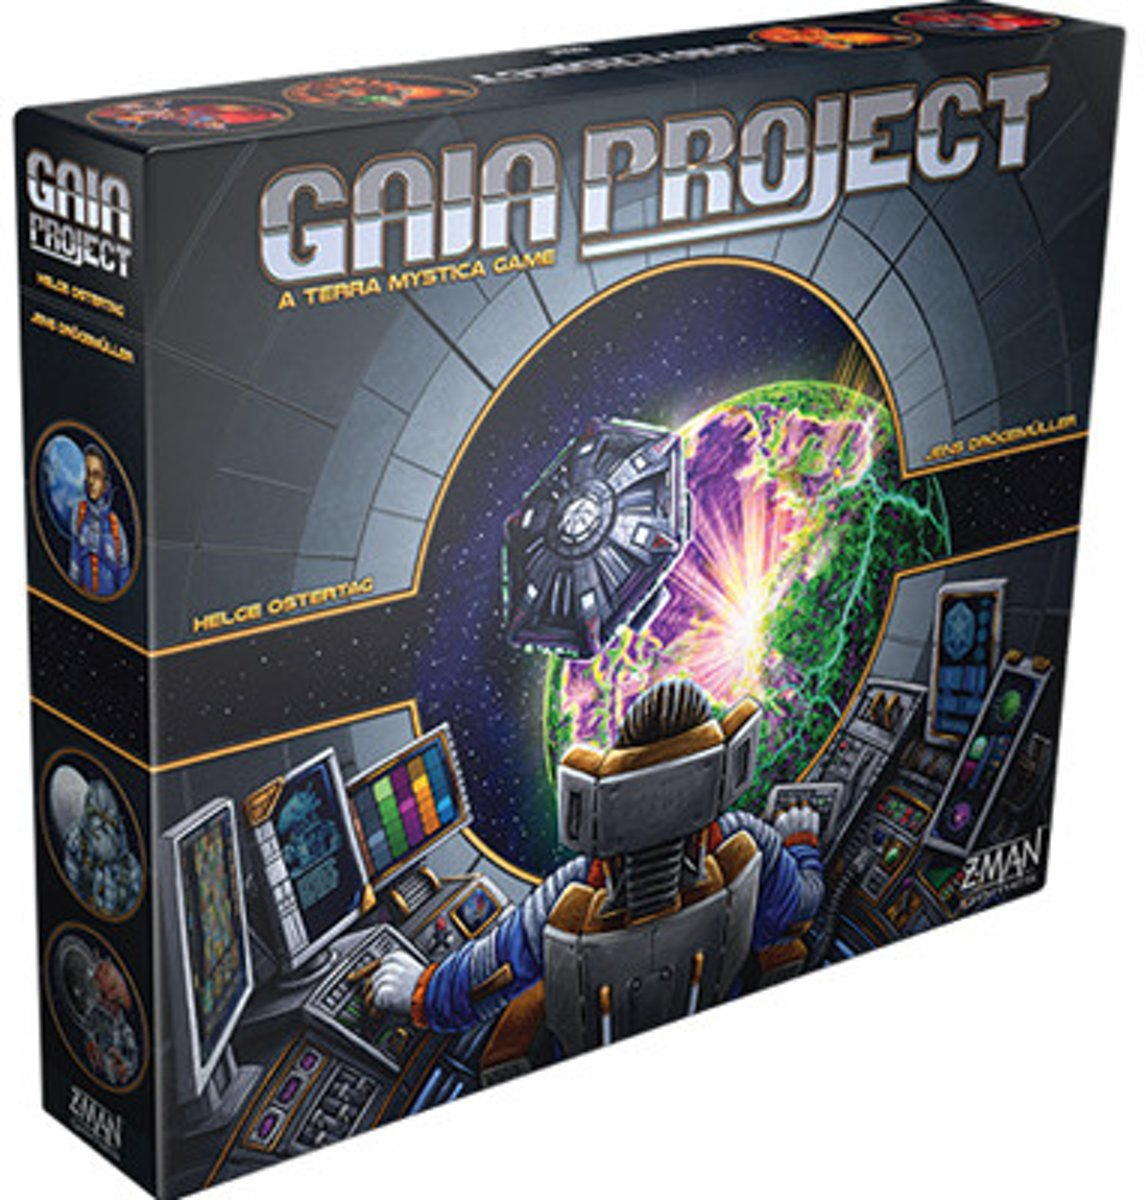 Gaia Projects - A Terra Mystica Game